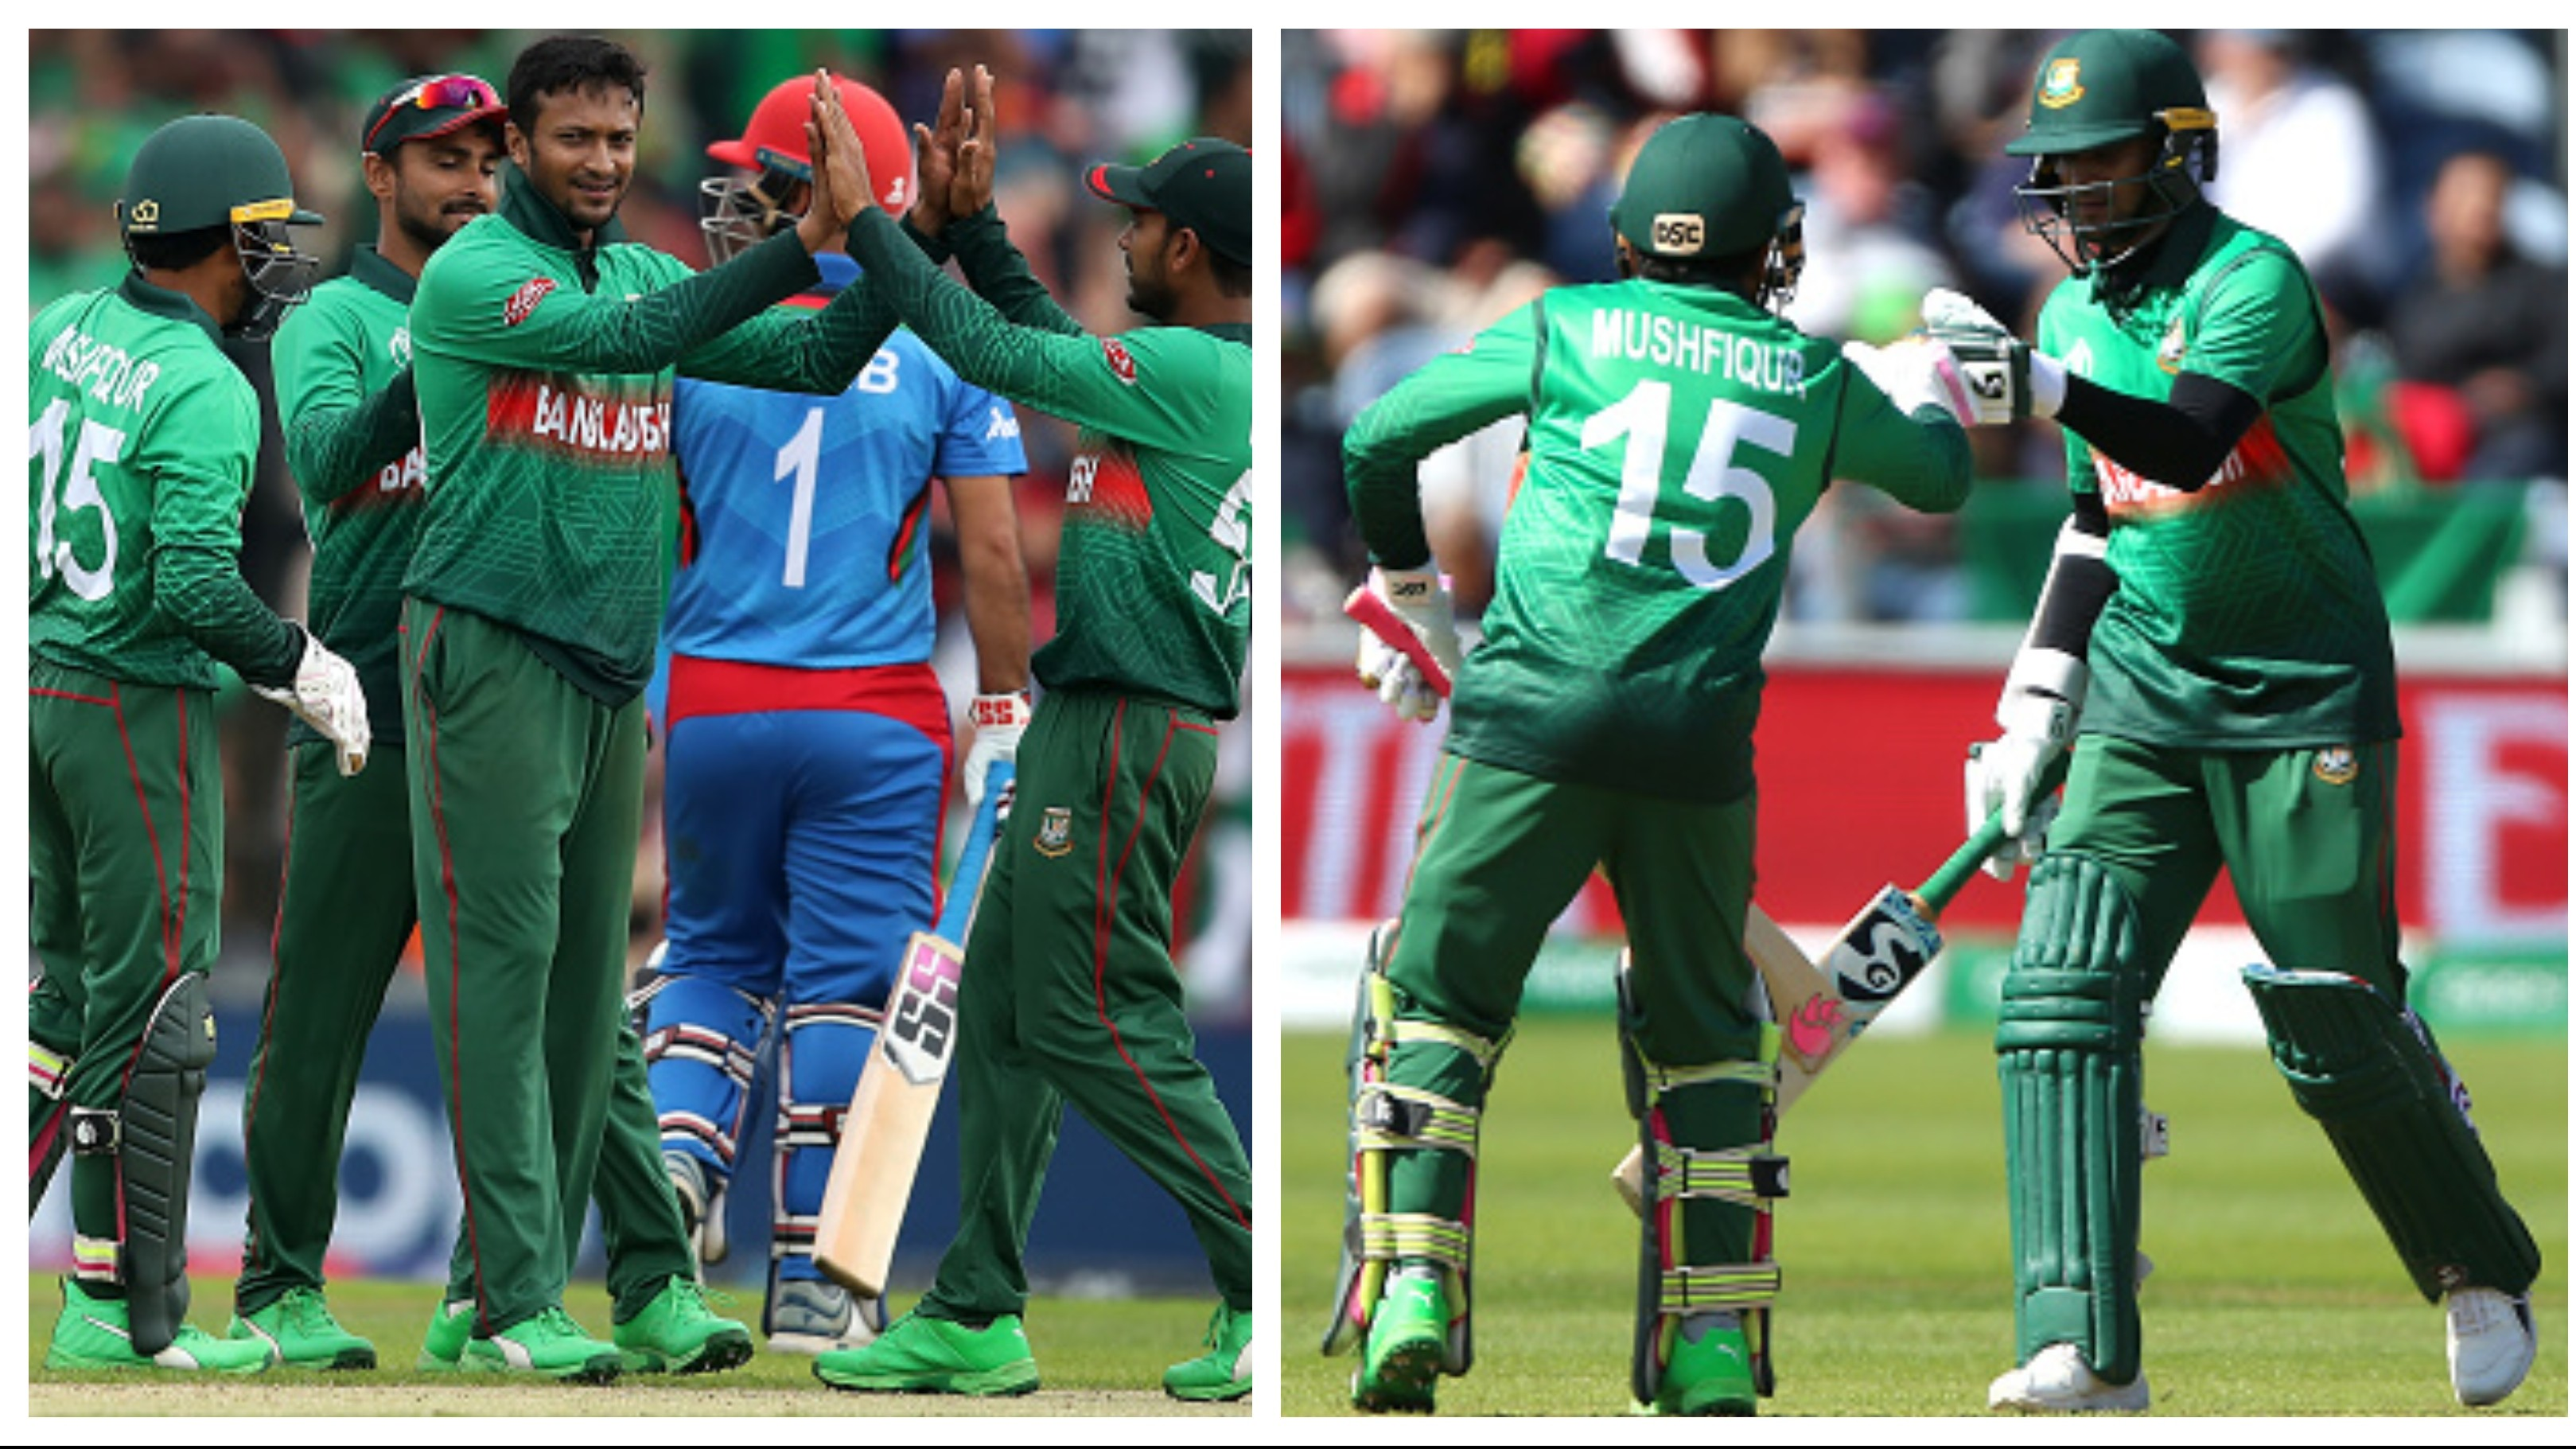 CWC 2019: Shakib Al Hasan's all-round brilliance powers Bangladesh to a thumping win over Afghanistan